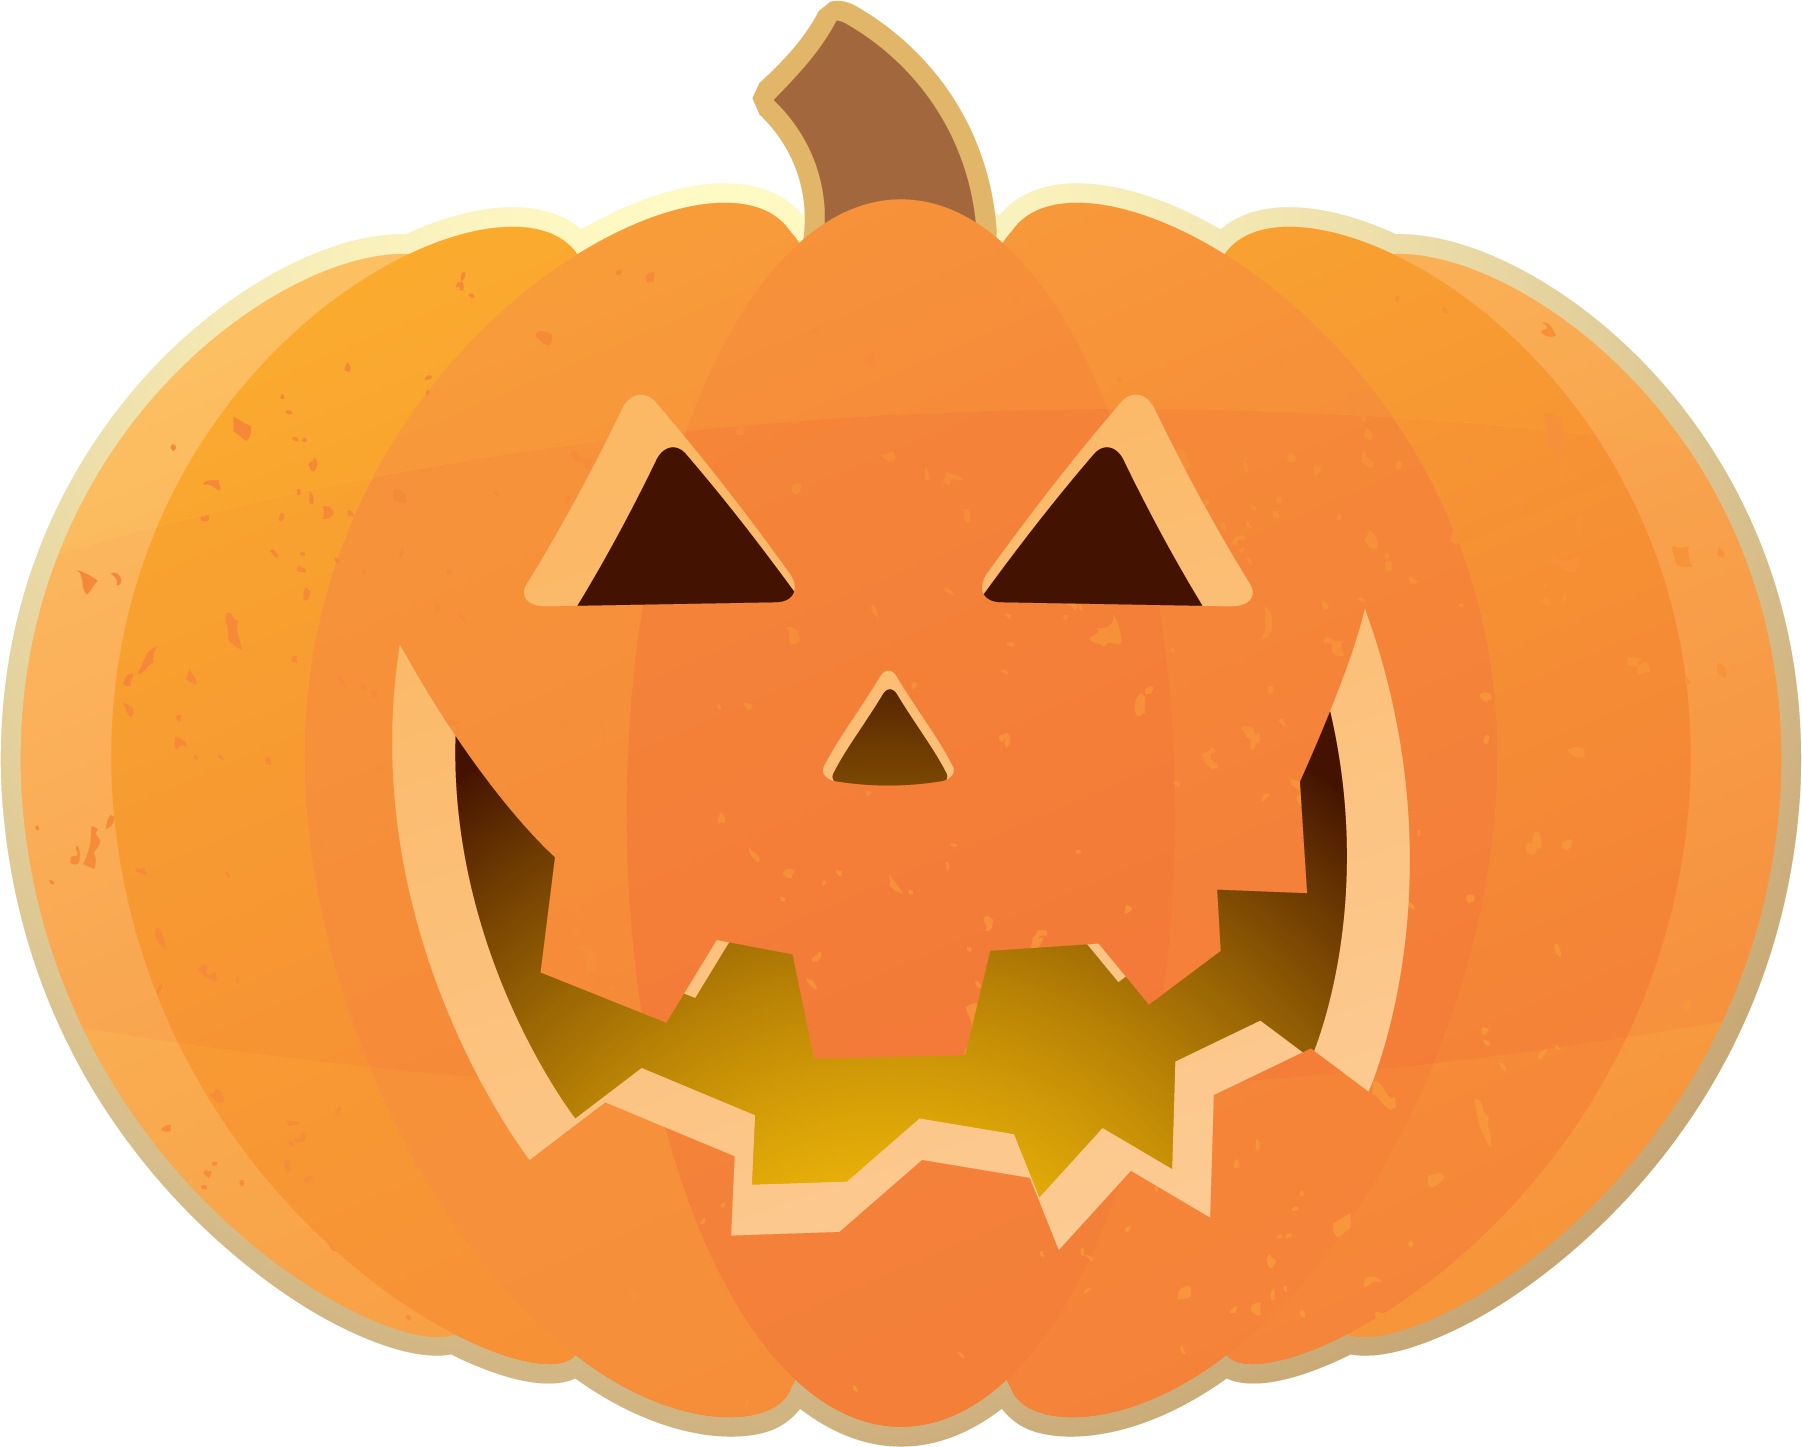 Pumpkin carving clipart free download Free Pumpkin Clipart at GetDrawings.com | Free for personal use Free ... download